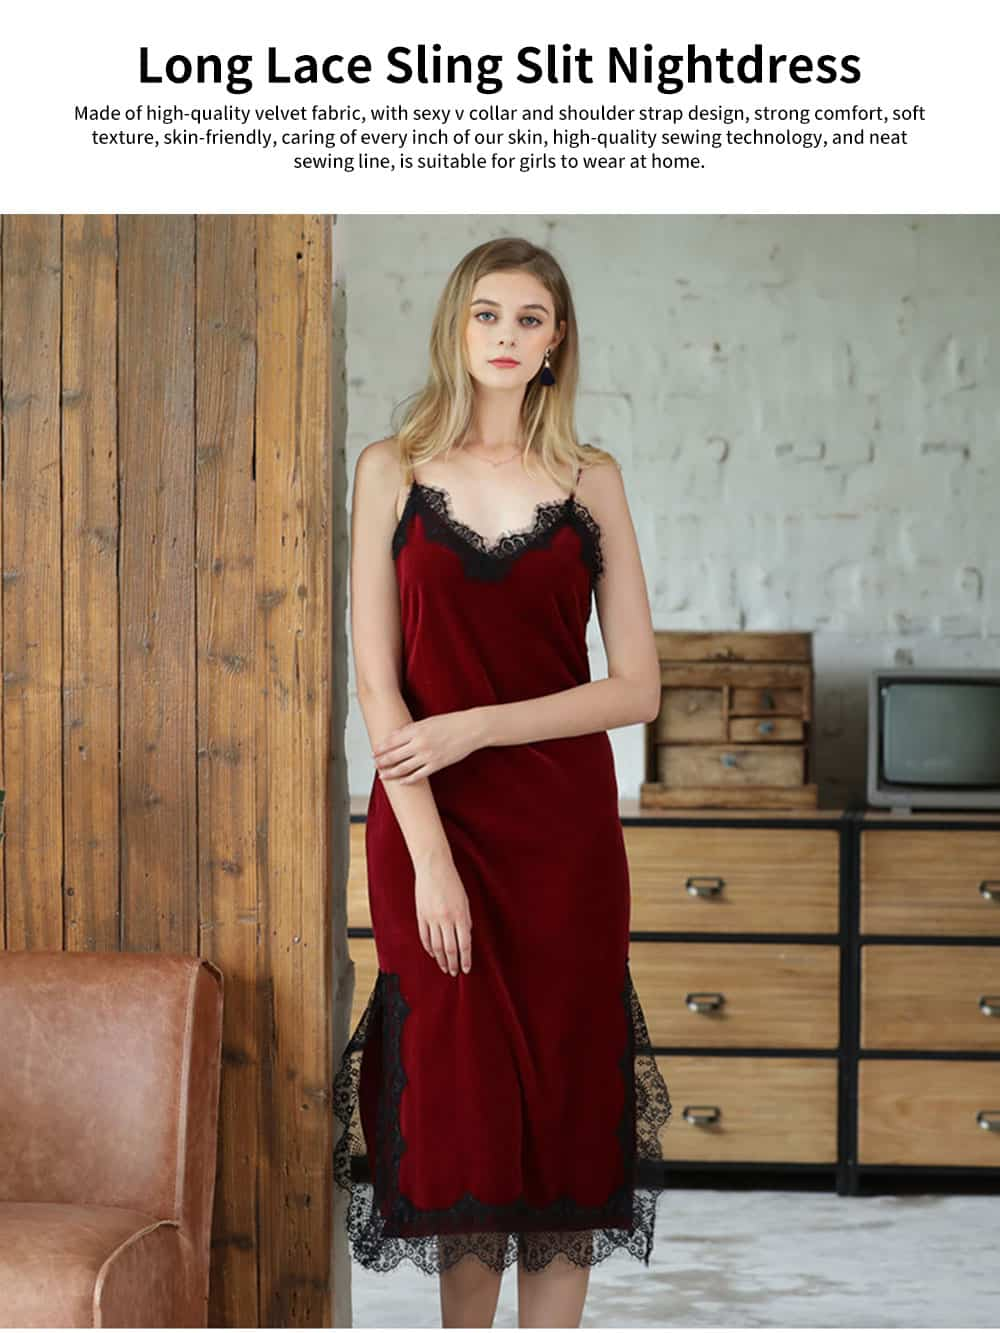 Breathable Soft Gold Velvet Pajamas Ladies Long Lace Sling Slit Nightdress with Bare Back Design for Winter 0